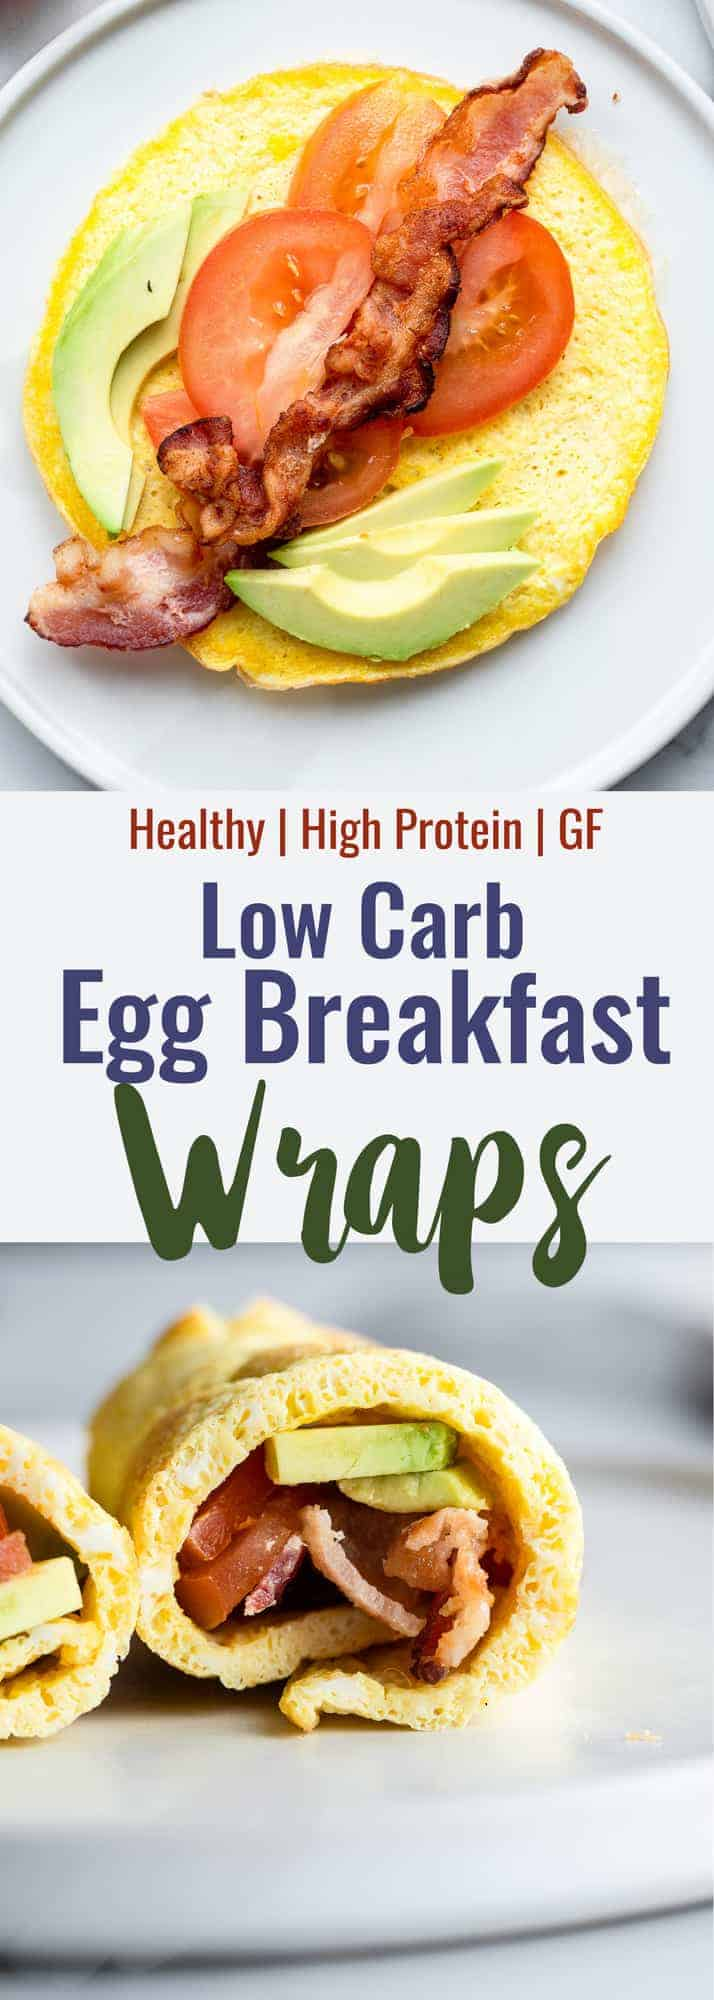 keto low carb egg wraps